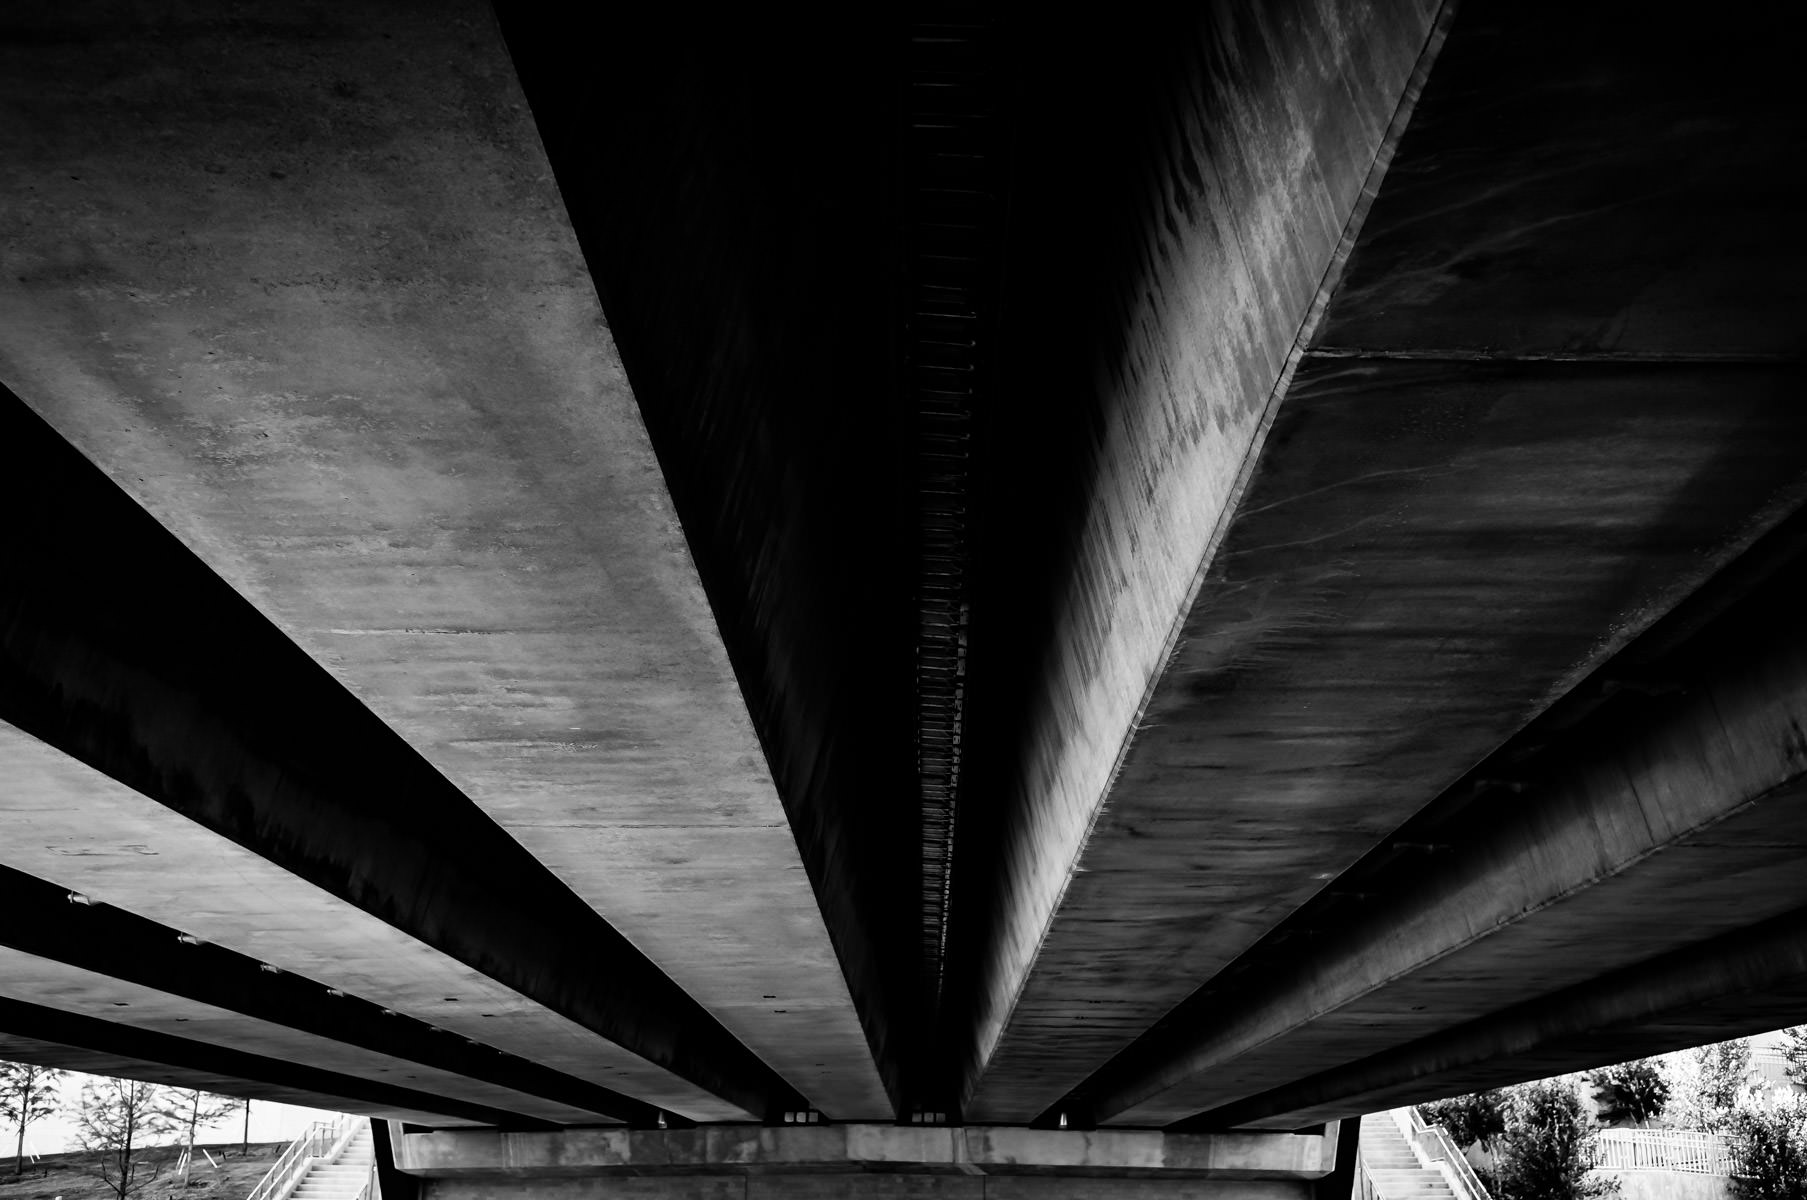 Underneath a bridge at Addison, Texas' Vitruvian Park.